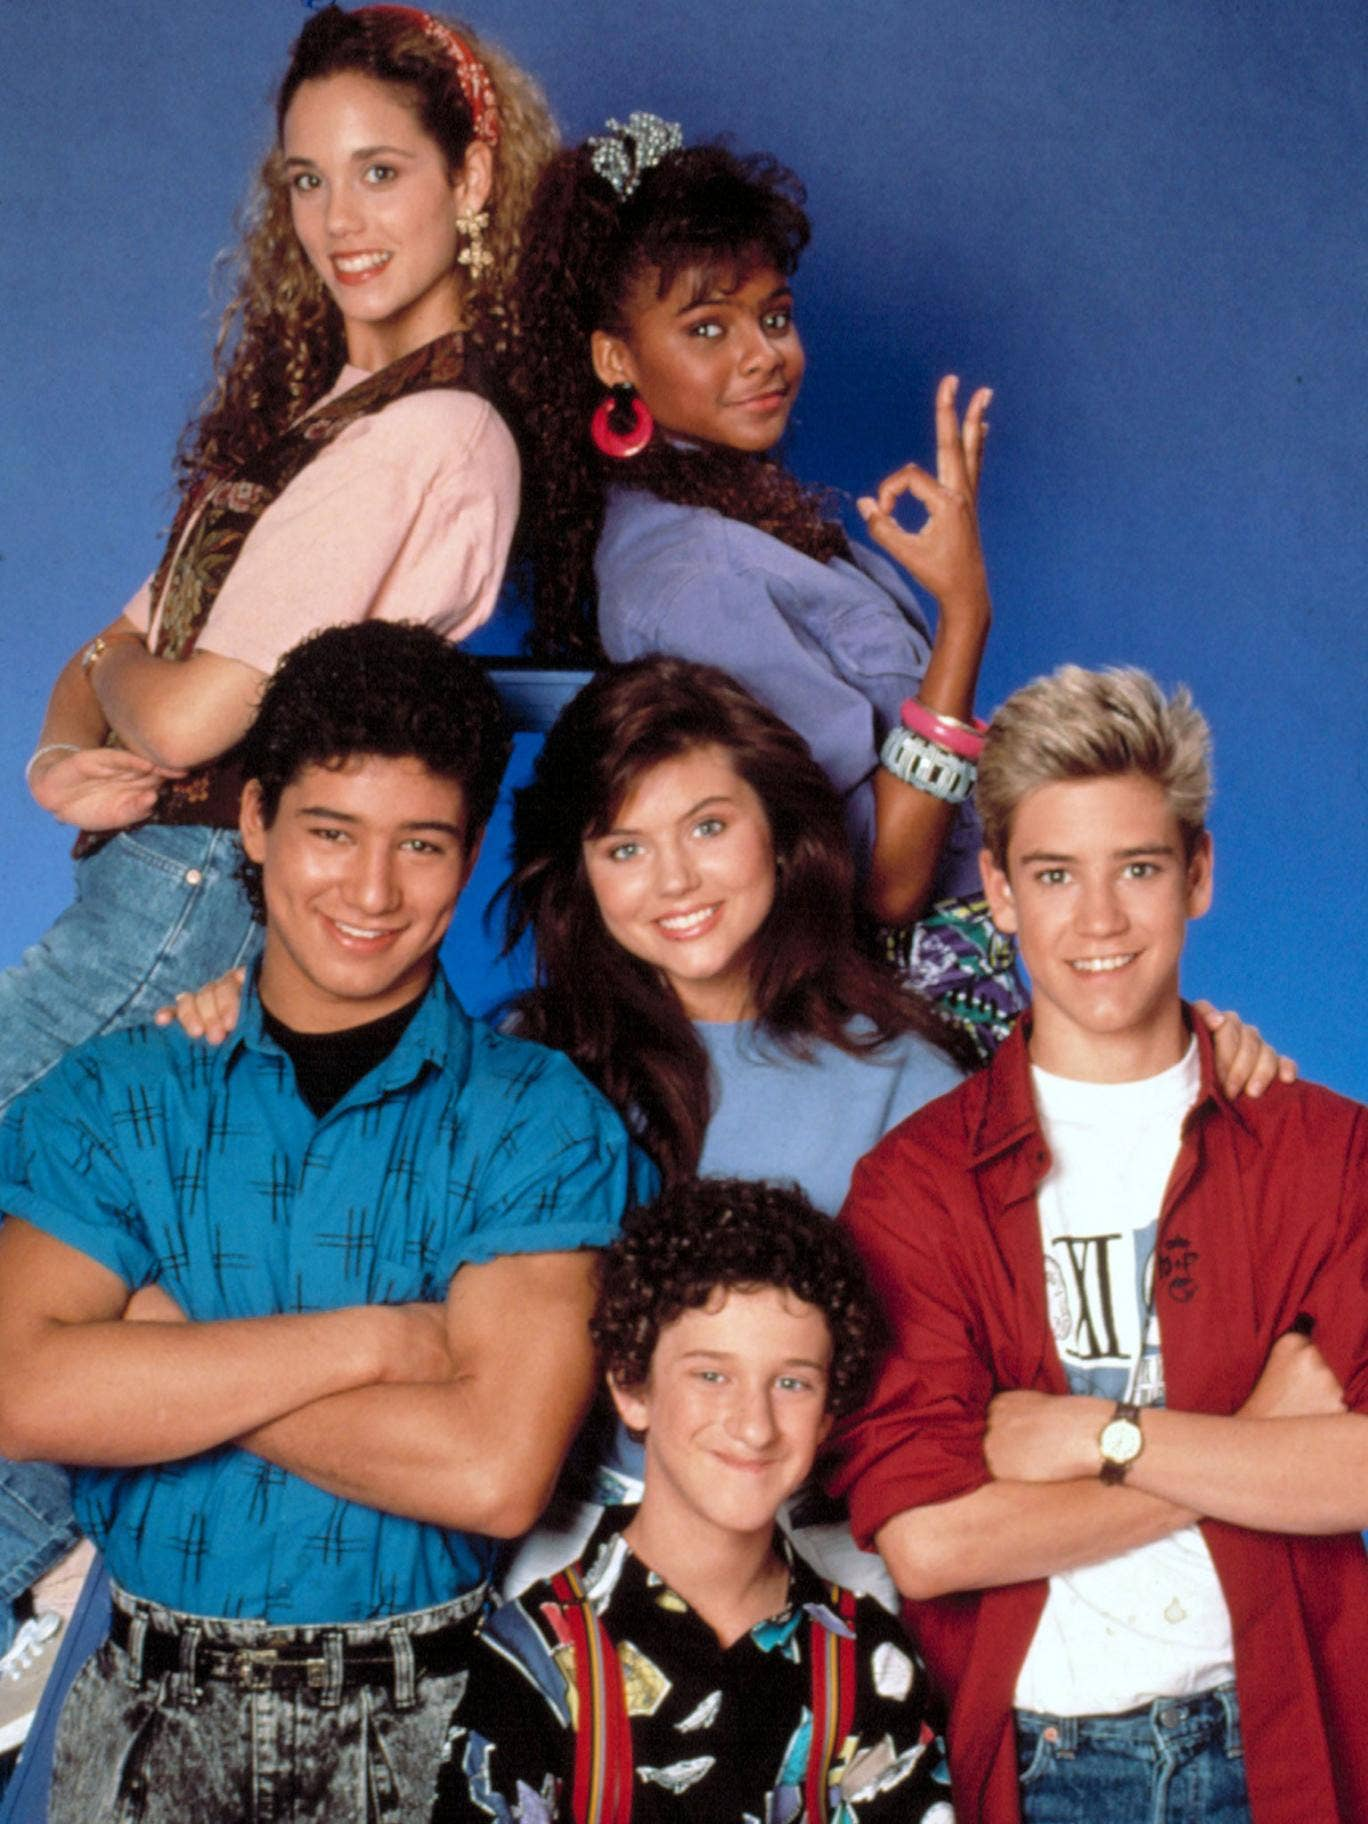 Elizabeth Berkley, Lark Voorhies, Mario Lopez, Tiffani-Amber Thiessen, Dustin Diamond and Mark-Paul Gosselaar starred in Saved by the Bell from 1989 to 1992